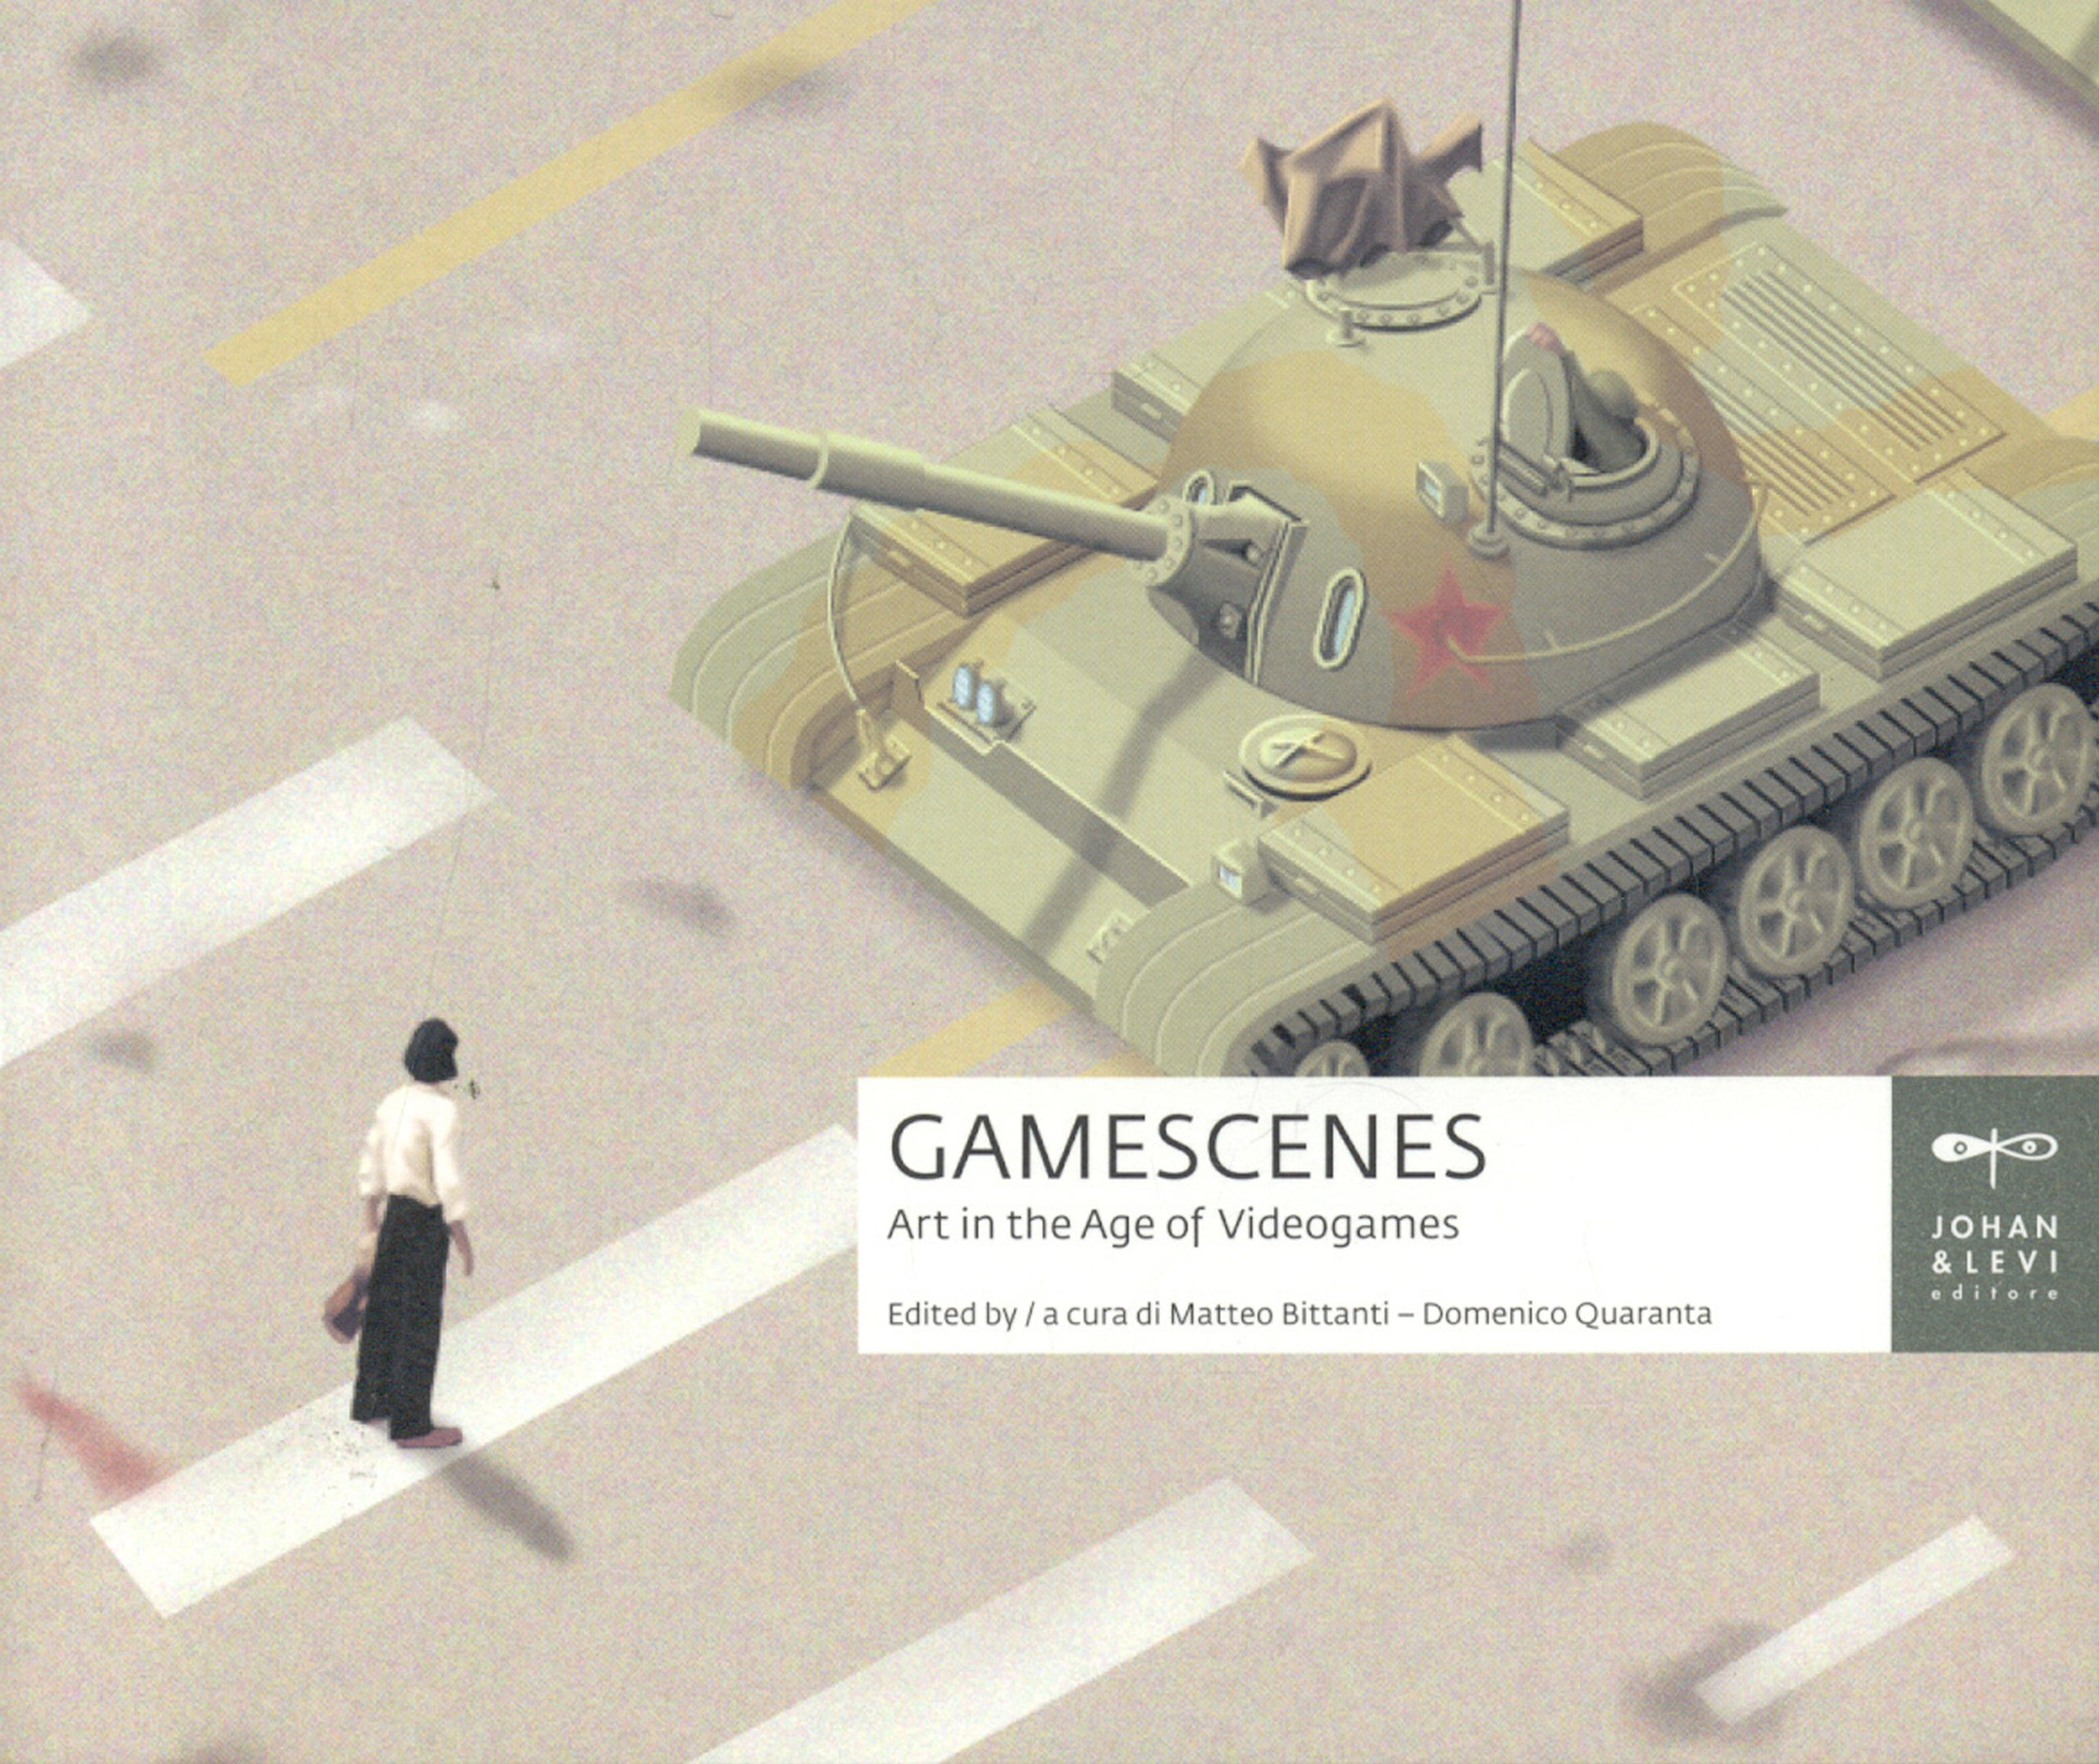 Gamescenes: Art in the Age of Videogames